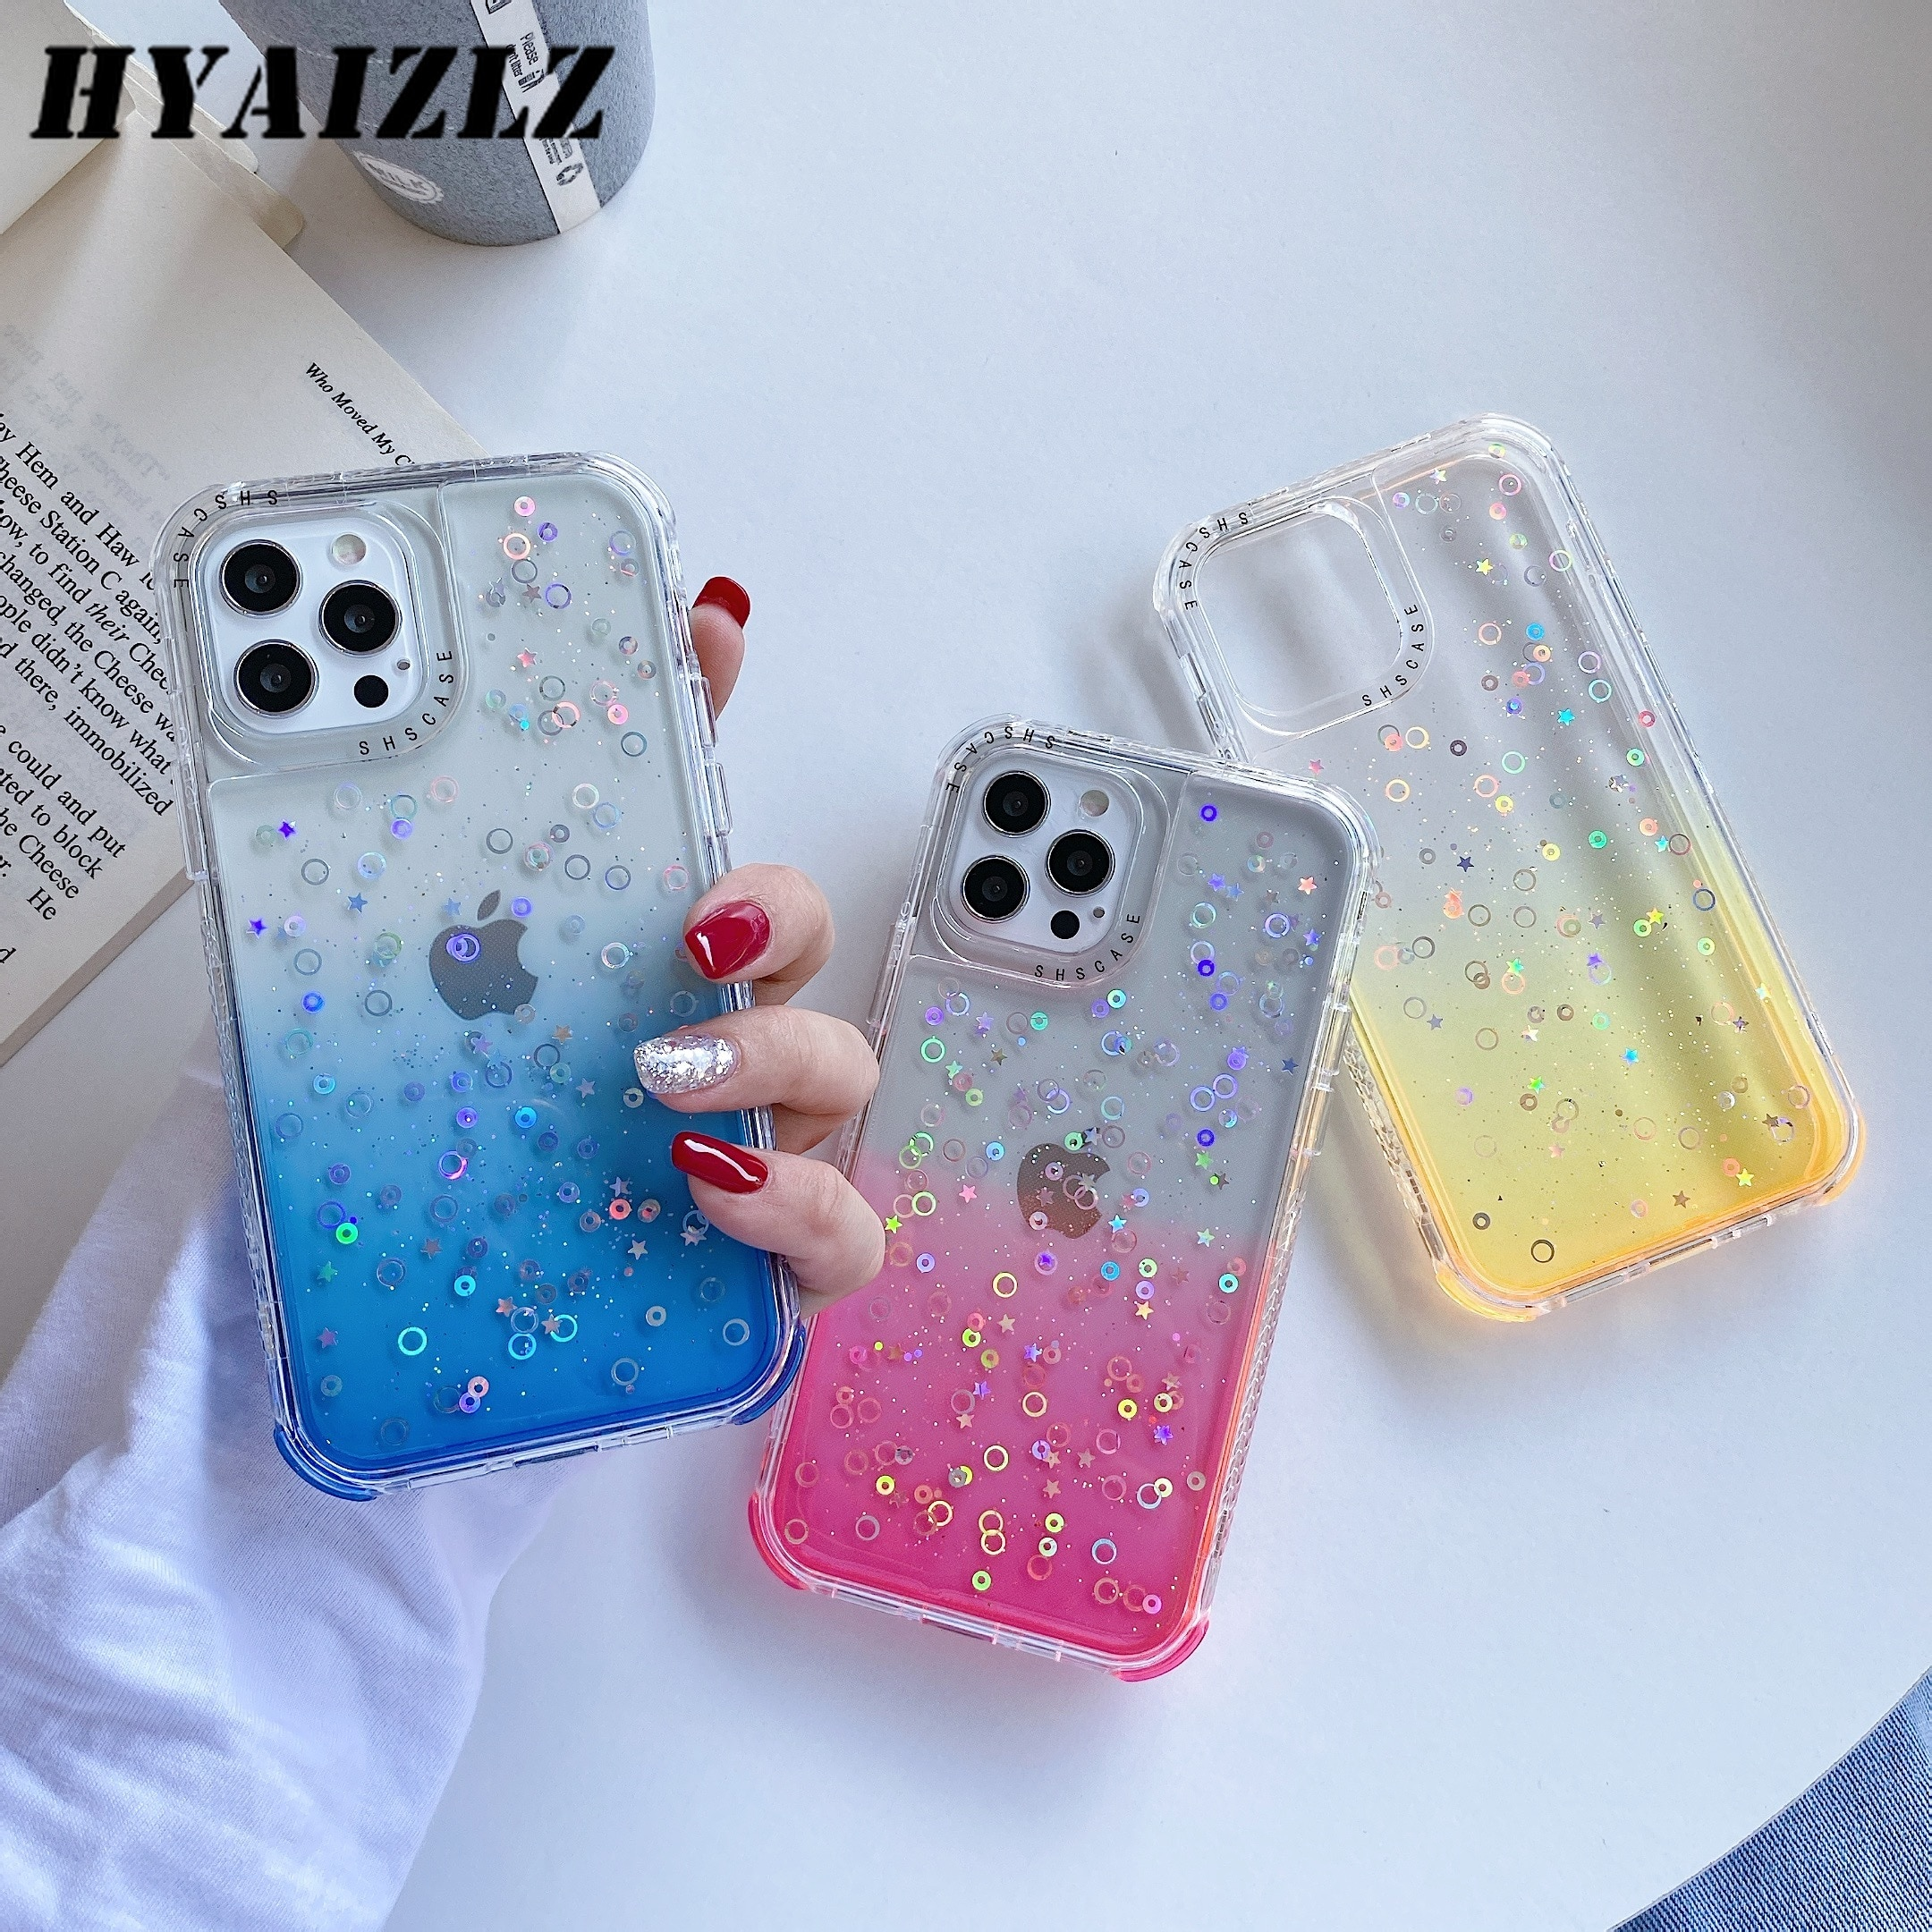 Shockproof Phone Case for iPhone 12 Mini SE 2020 11 Pro Max XR X 6 7 8 Plus Clear Gradient Glitter Bling Back Cover Bumper Funda